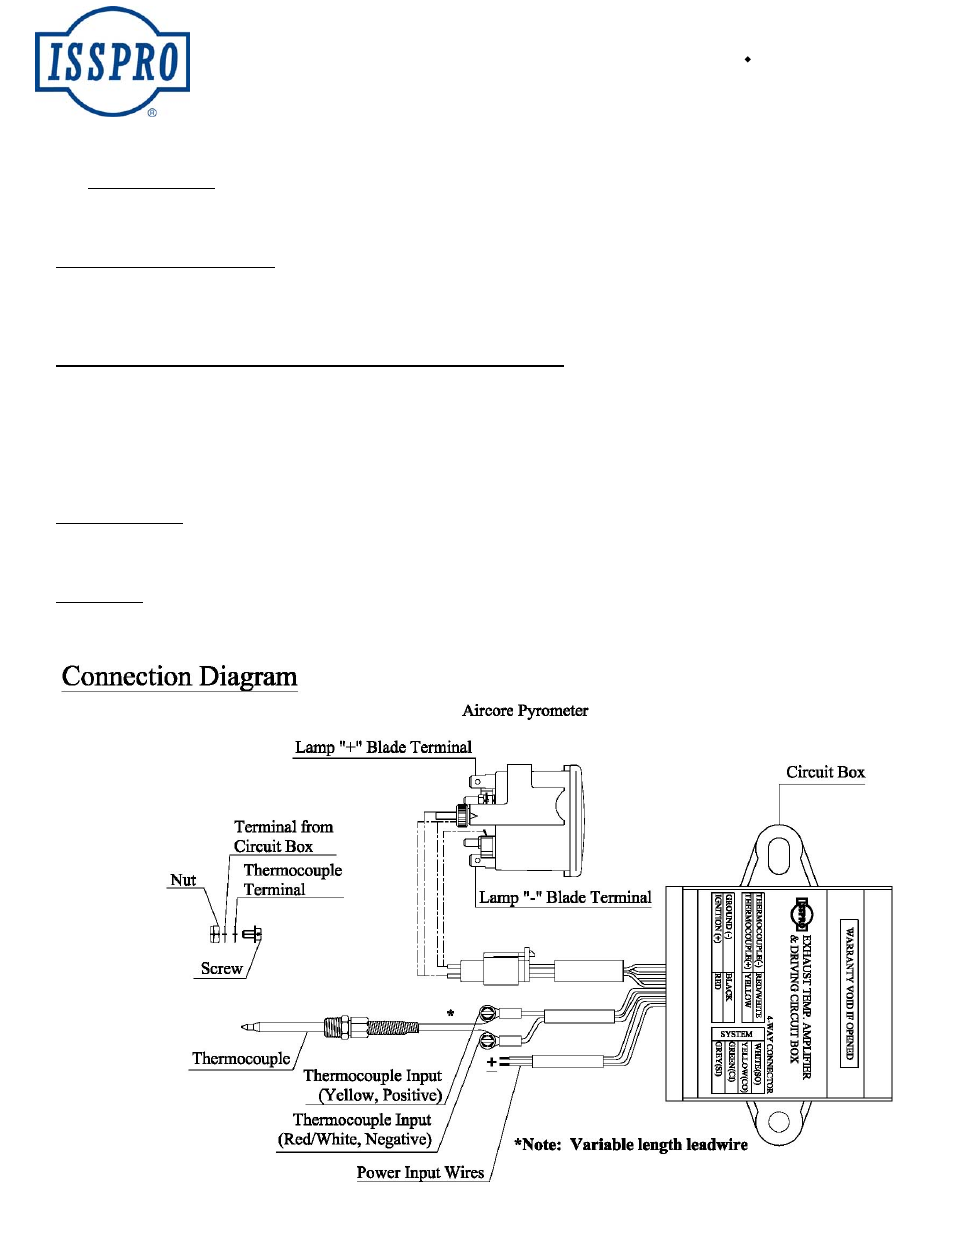 Isspro R3707g User Manual 1 Page Also For R3707 R3607vw Box In Red Wire Single Pole Switch Wiring Diagram R3607t R3607g R3607